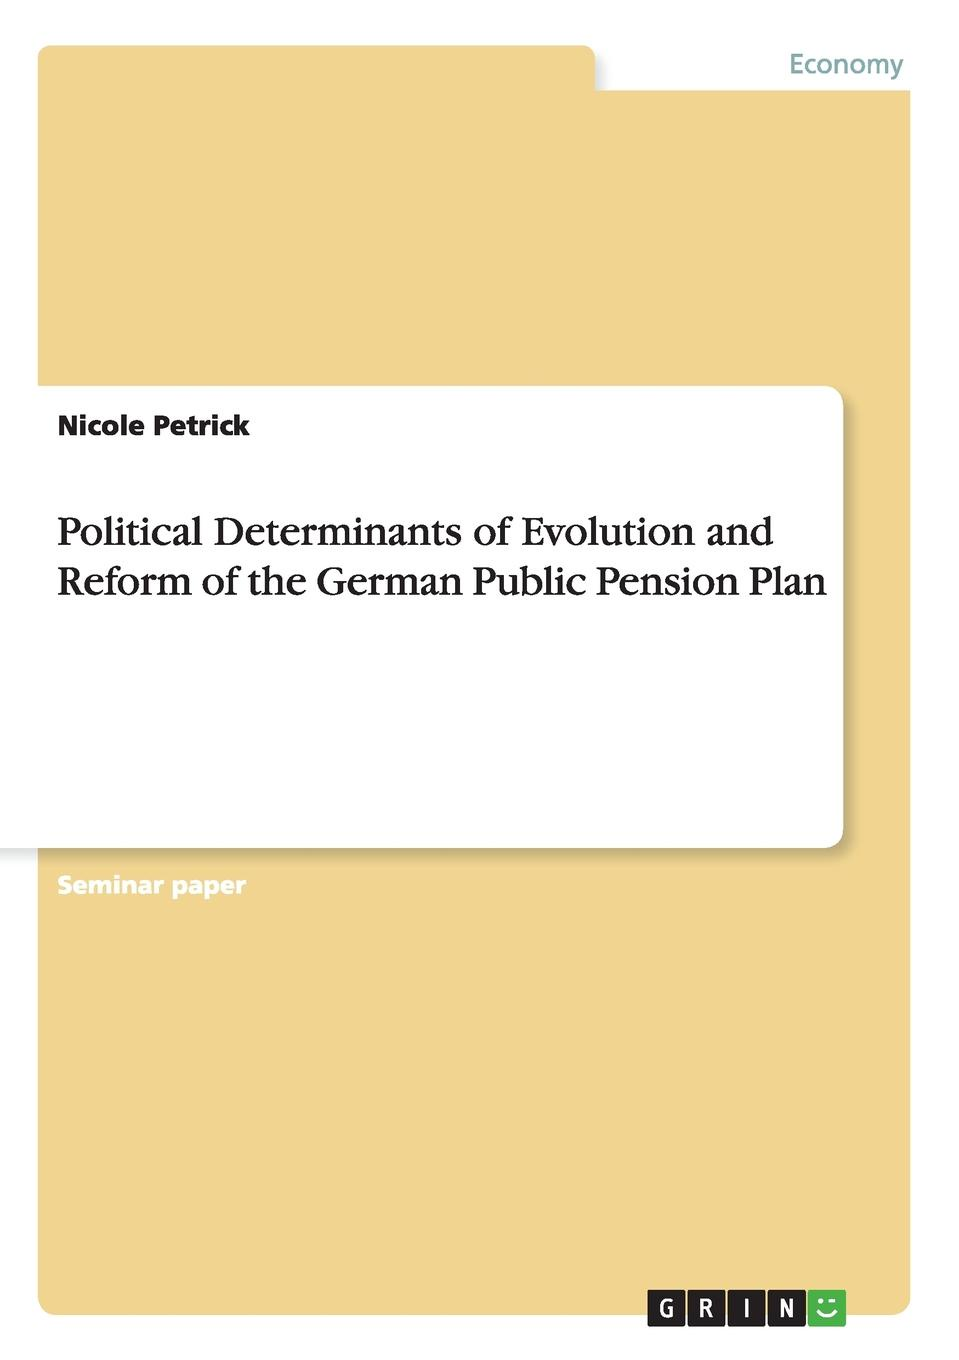 лучшая цена Nicole Petrick Political Determinants of Evolution and Reform of the German Public Pension Plan